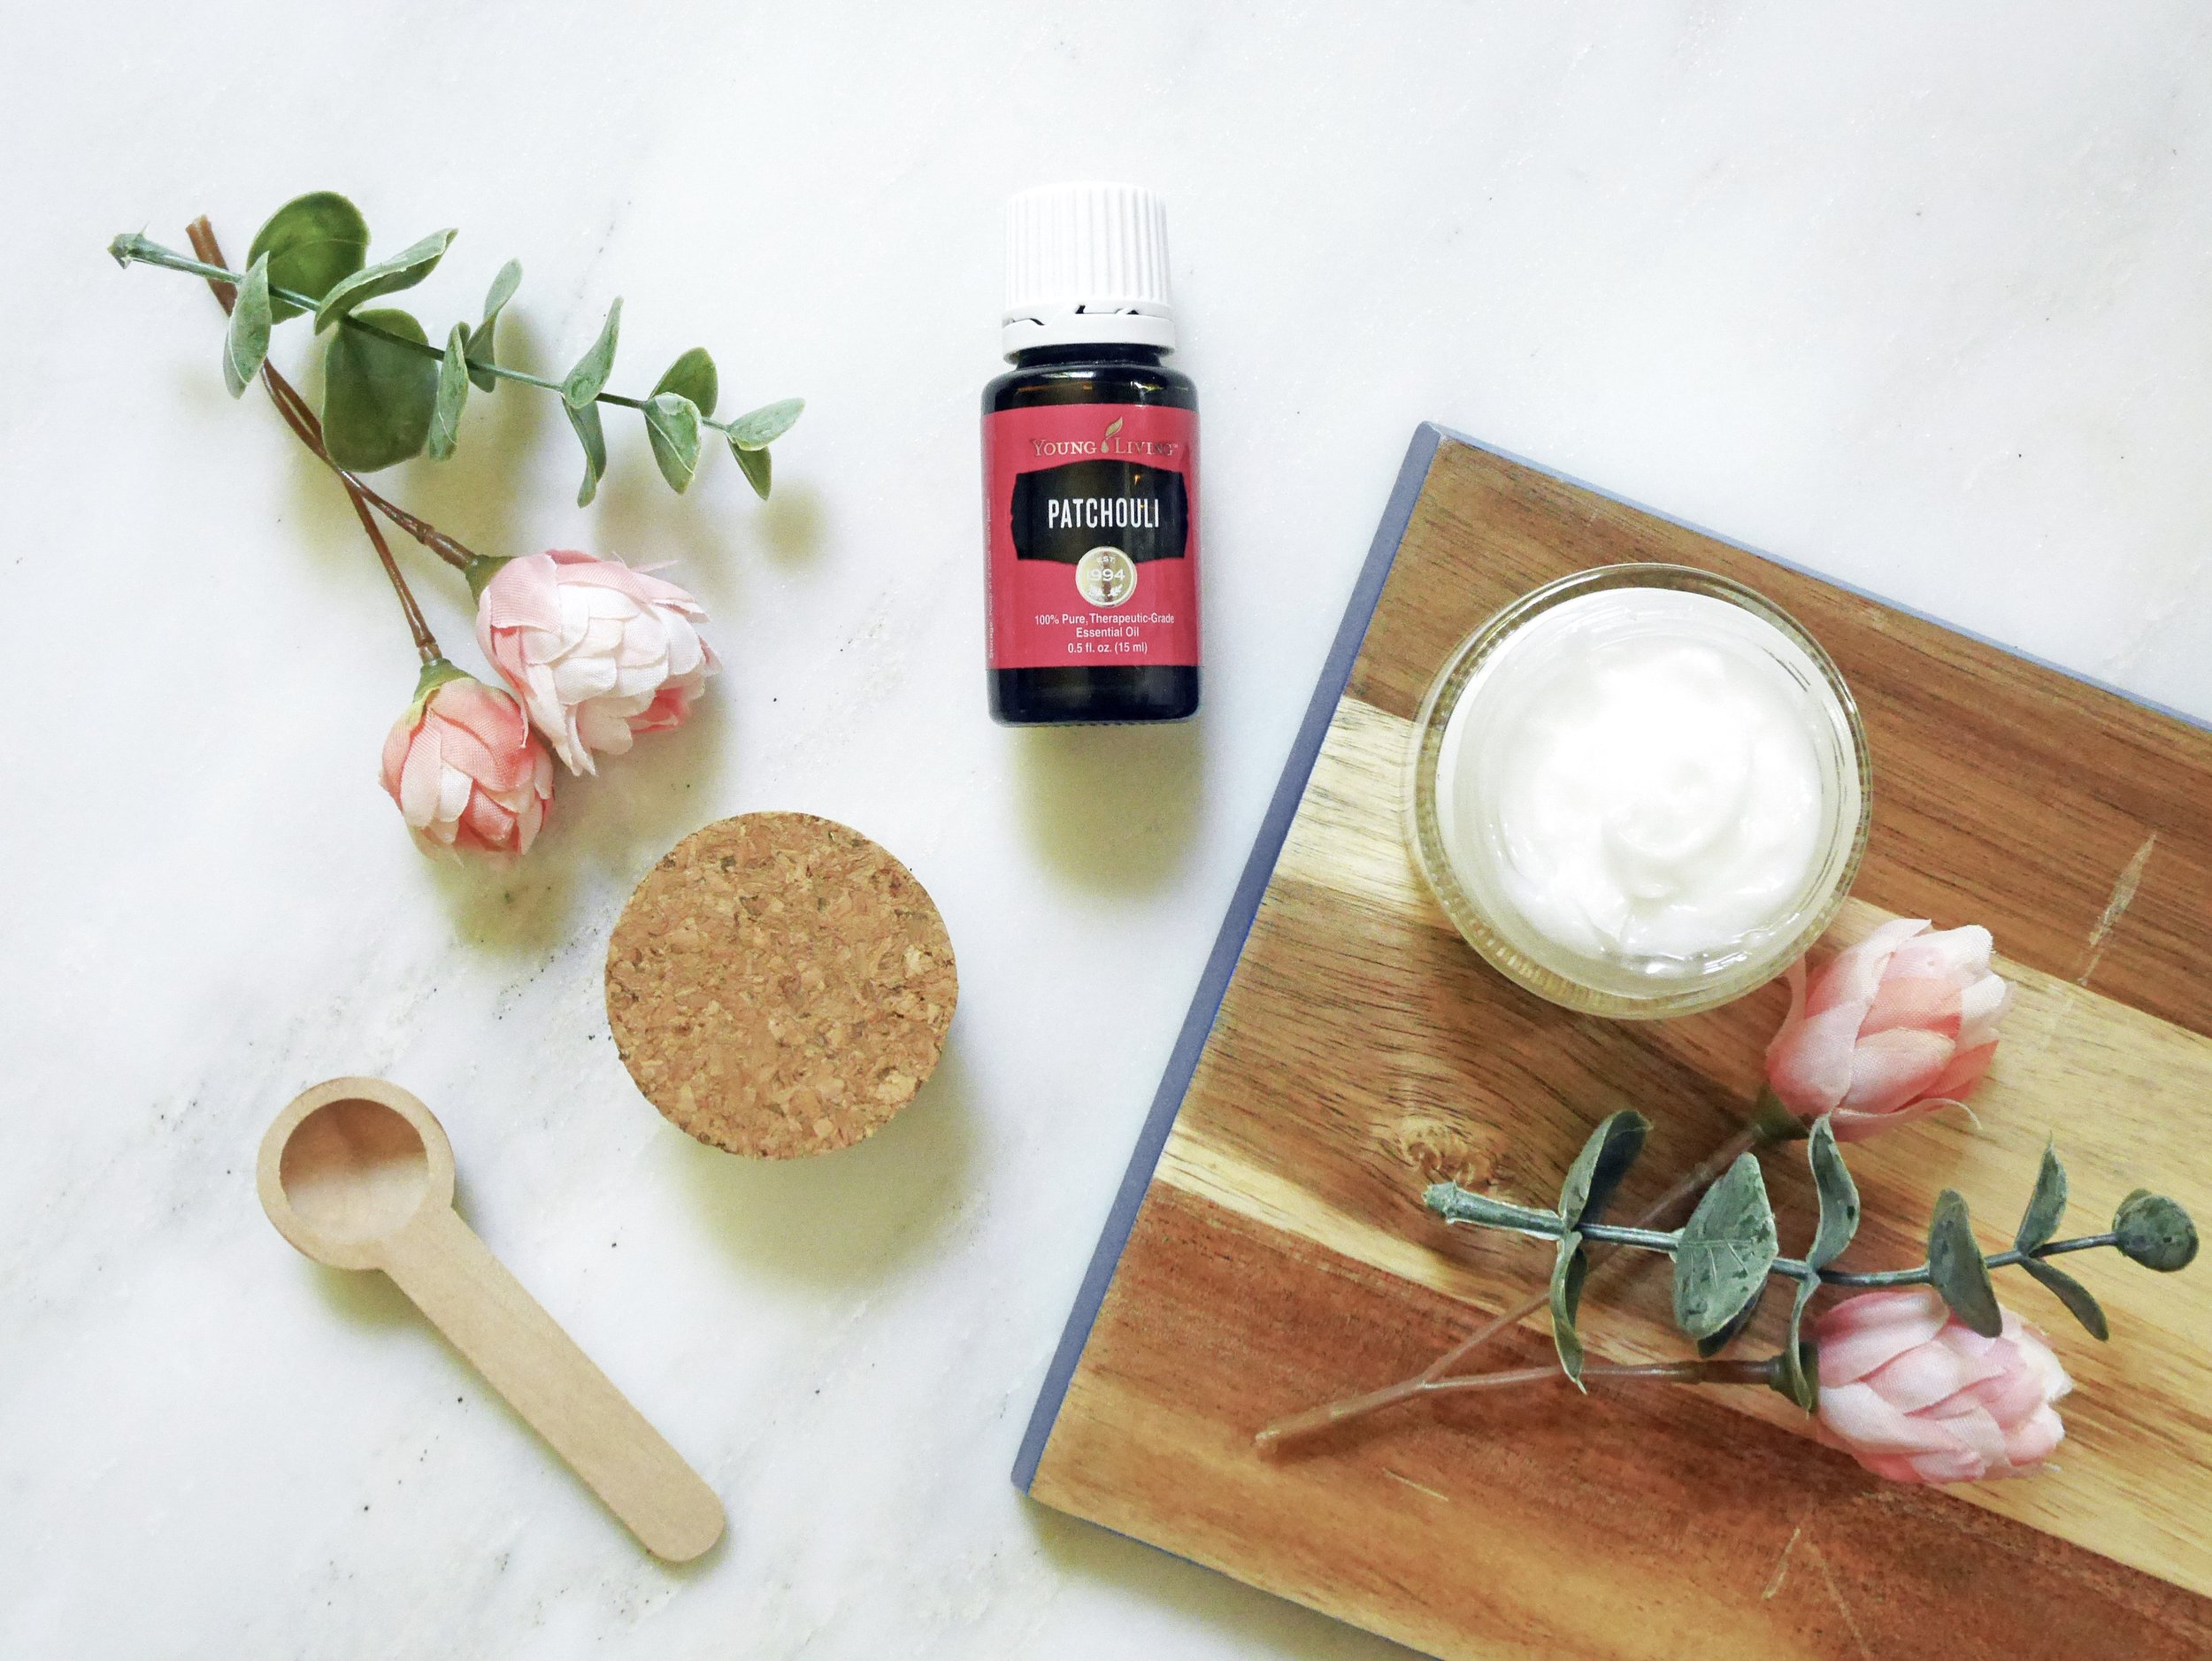 Young-Living-Essential-Oils-Patchouli-DIY-Soothing-Bath-Balm-Lotion-vitamin-3-coconut-oil-Green-natural-The-Oily-Home-Companion.JPG